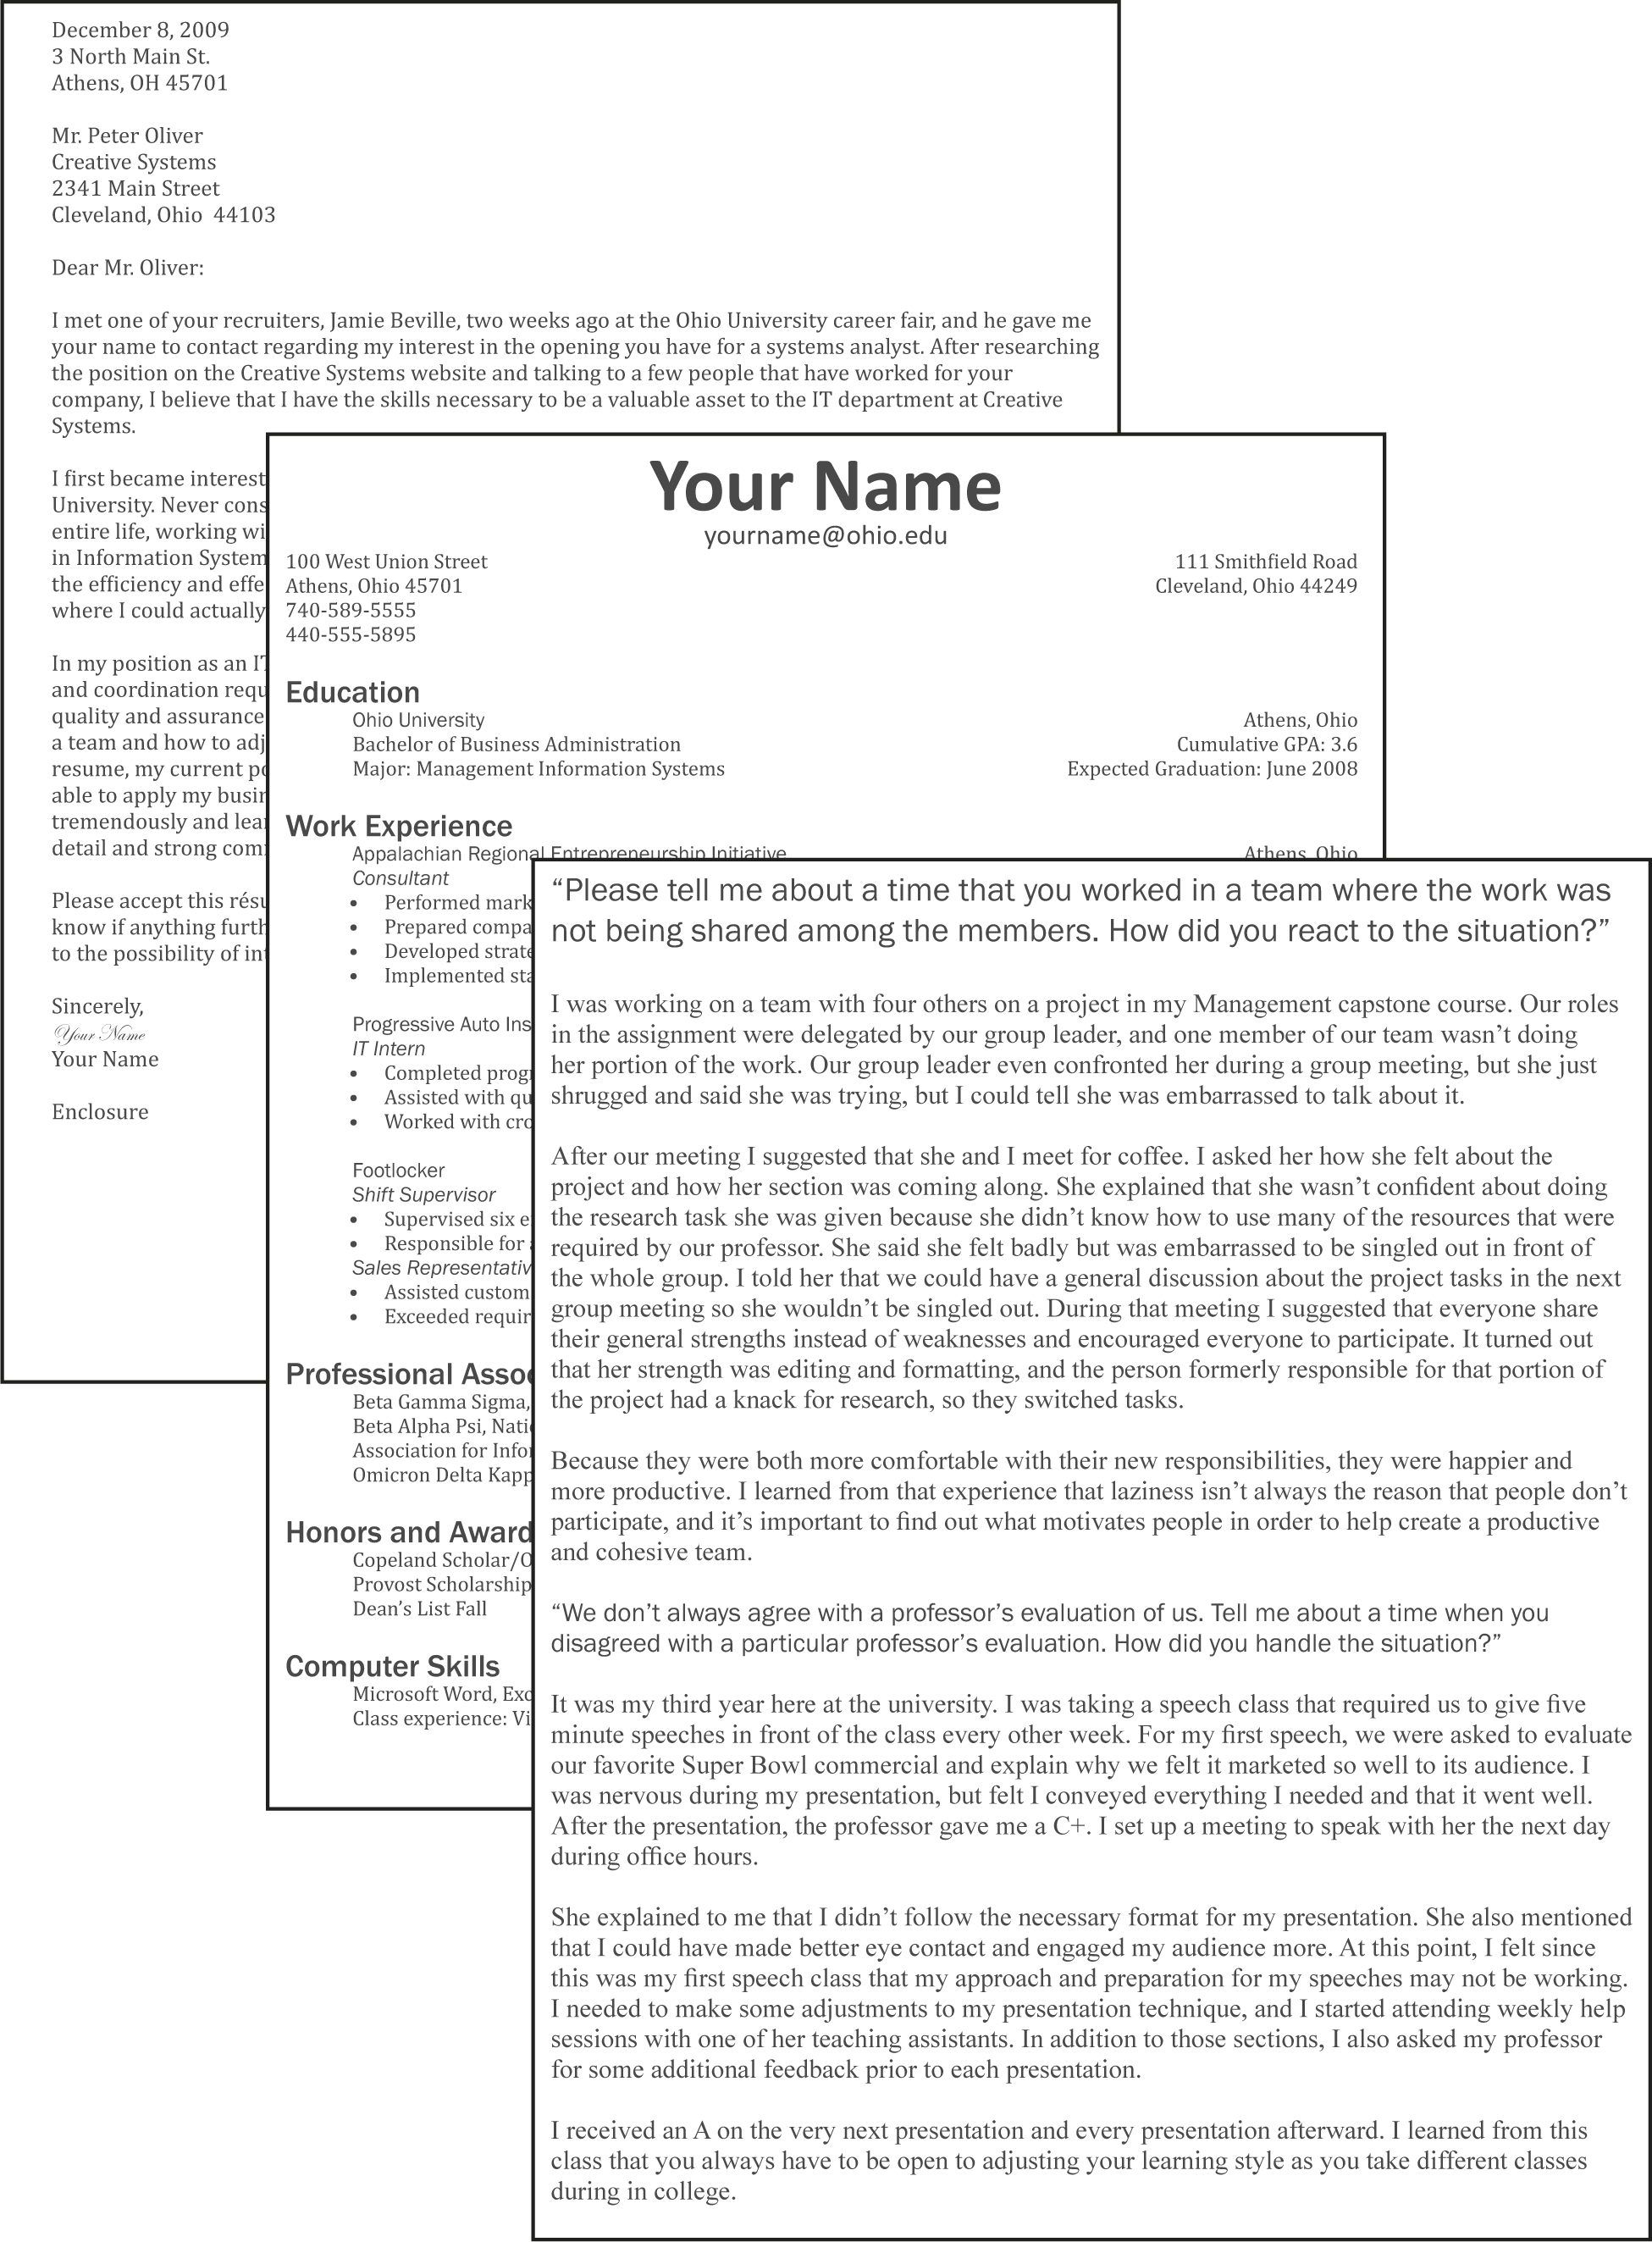 L3 Assignment: Resume, Cover Letter, And Interview